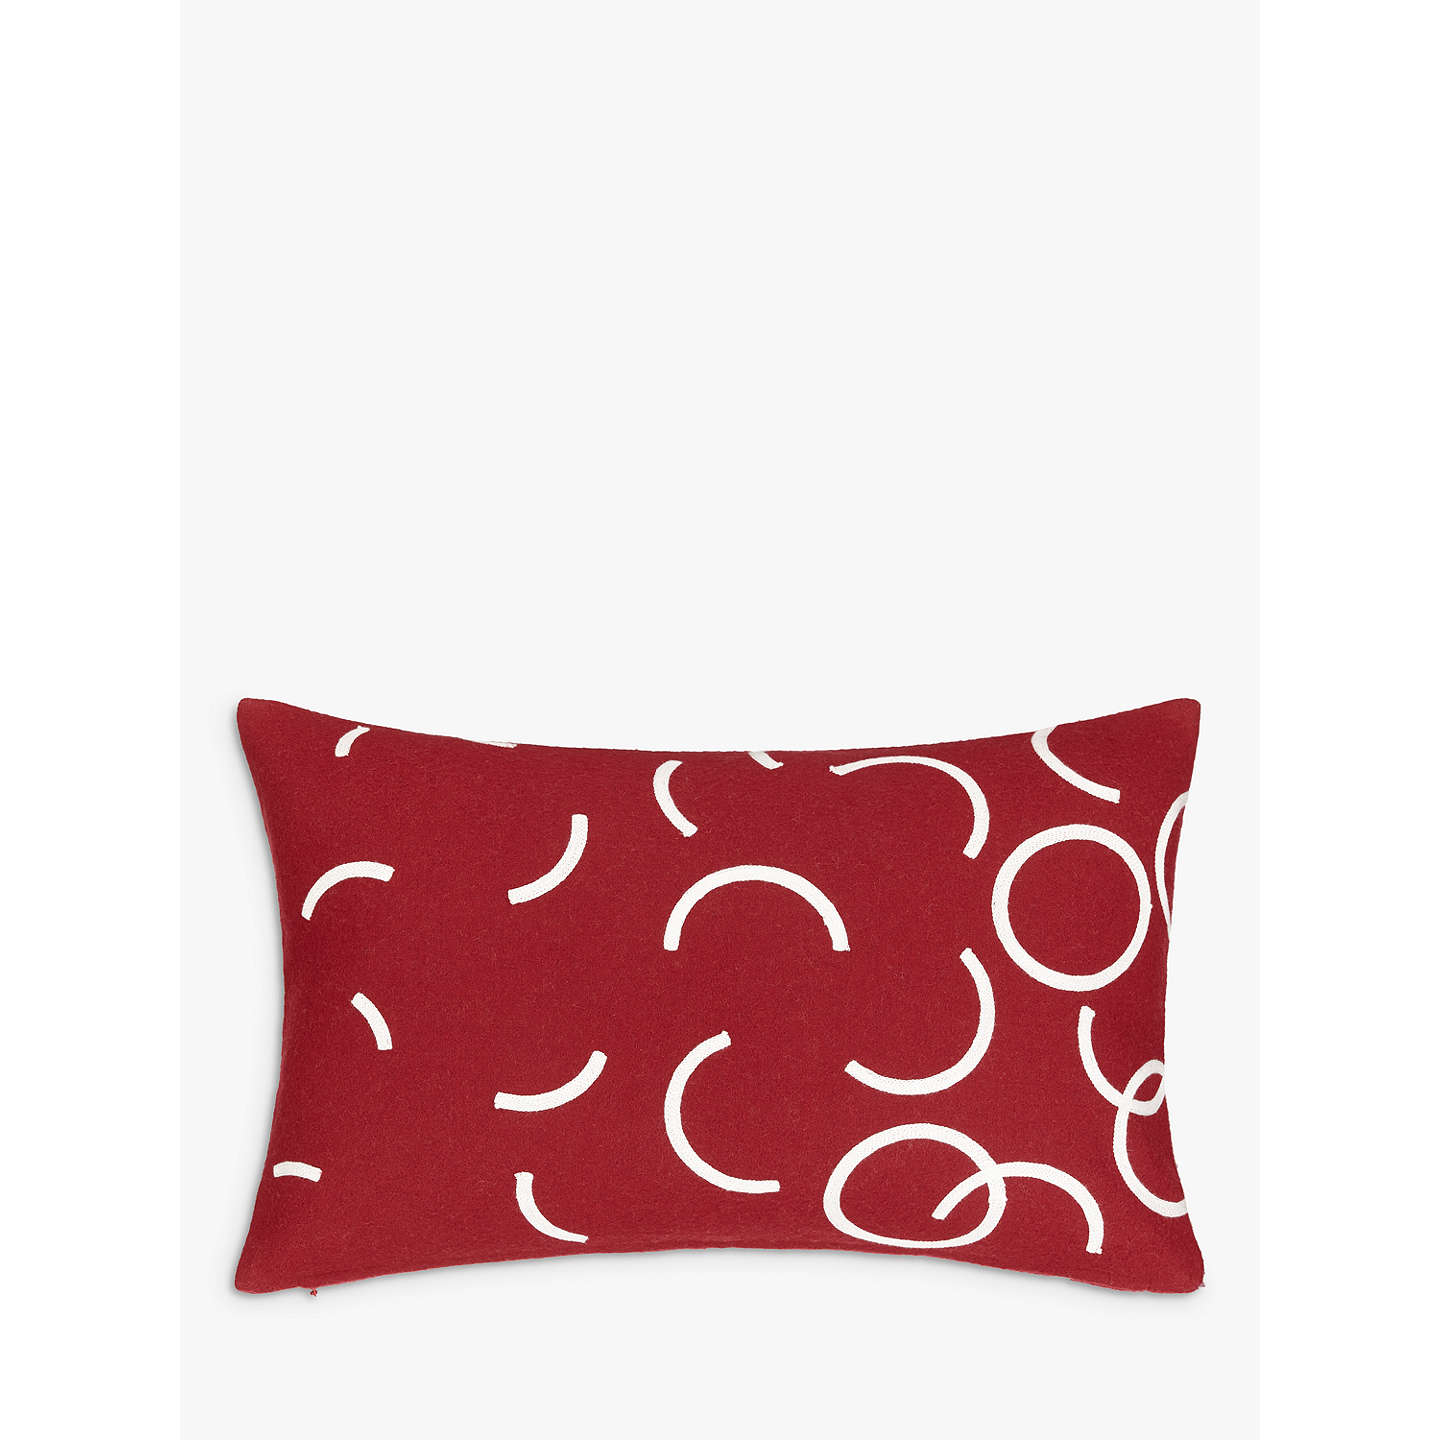 BuyHouse by John Lewis Hula Cushion, Burgundy Online at johnlewis.com